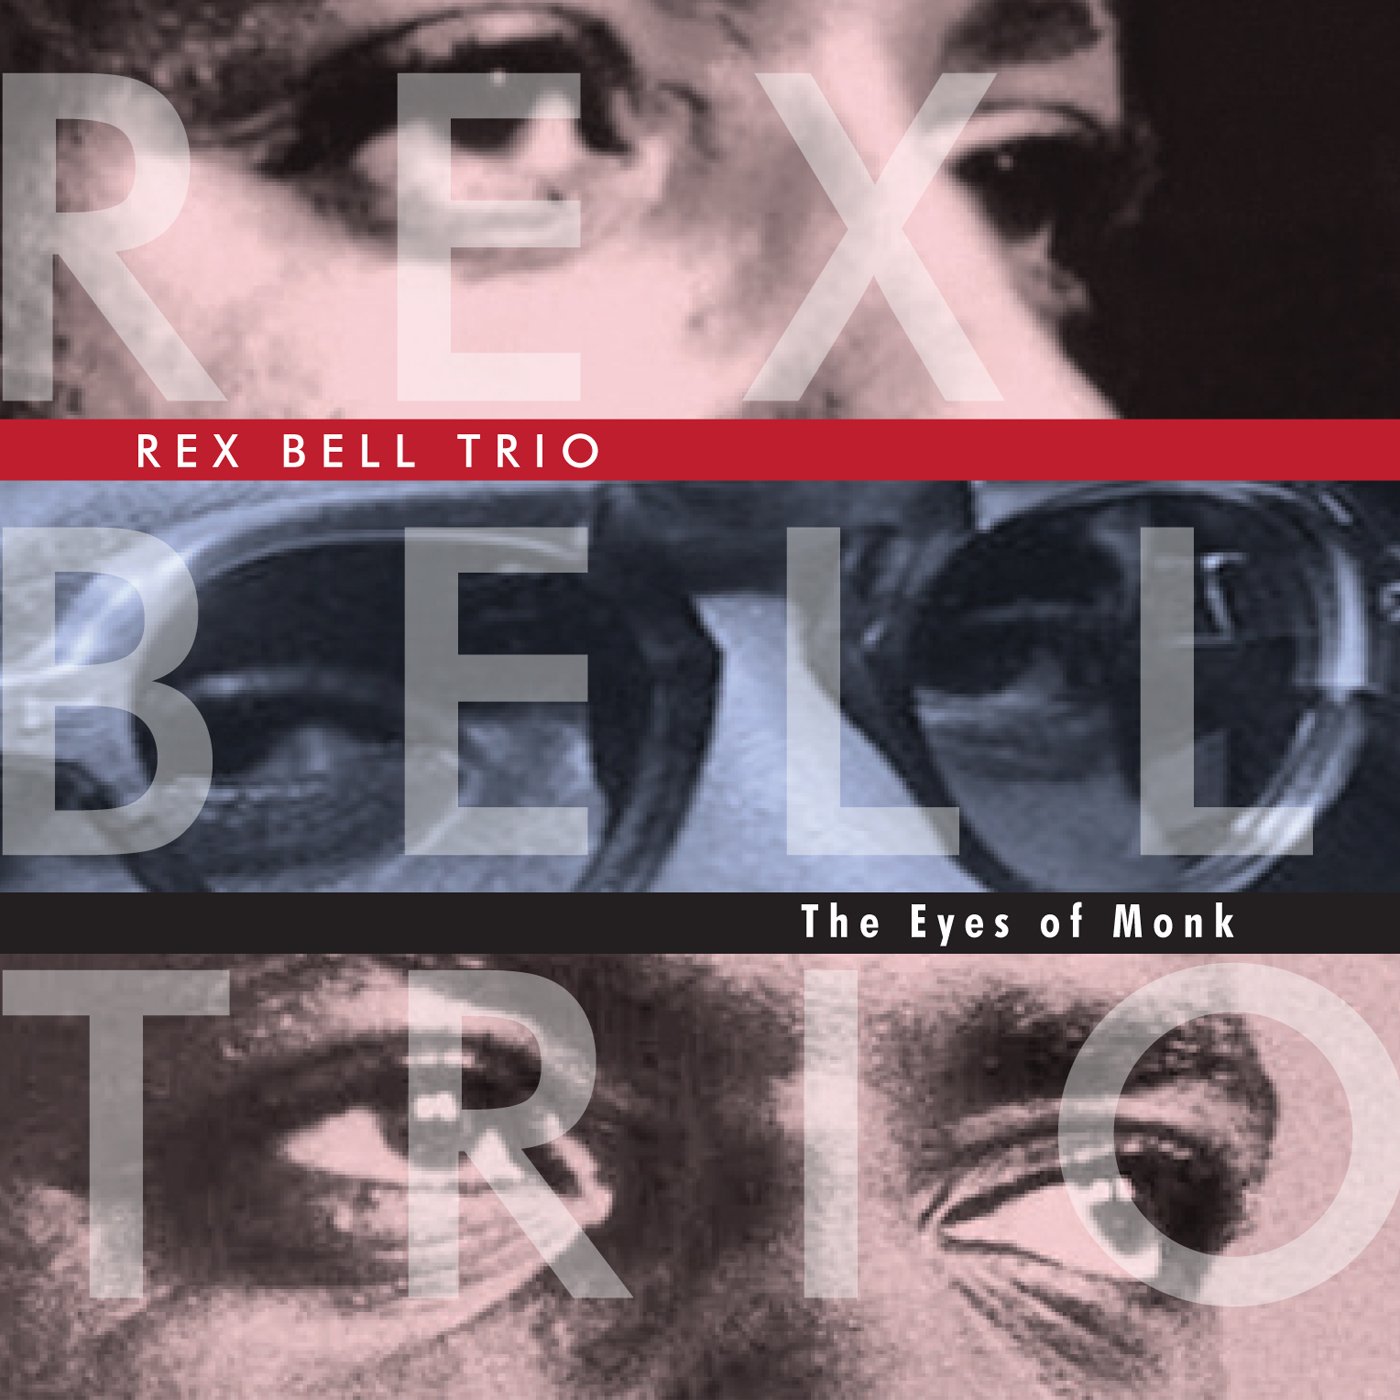 Rex-Bell-Trio-The-Eyes-of-Monk-CD-Baby